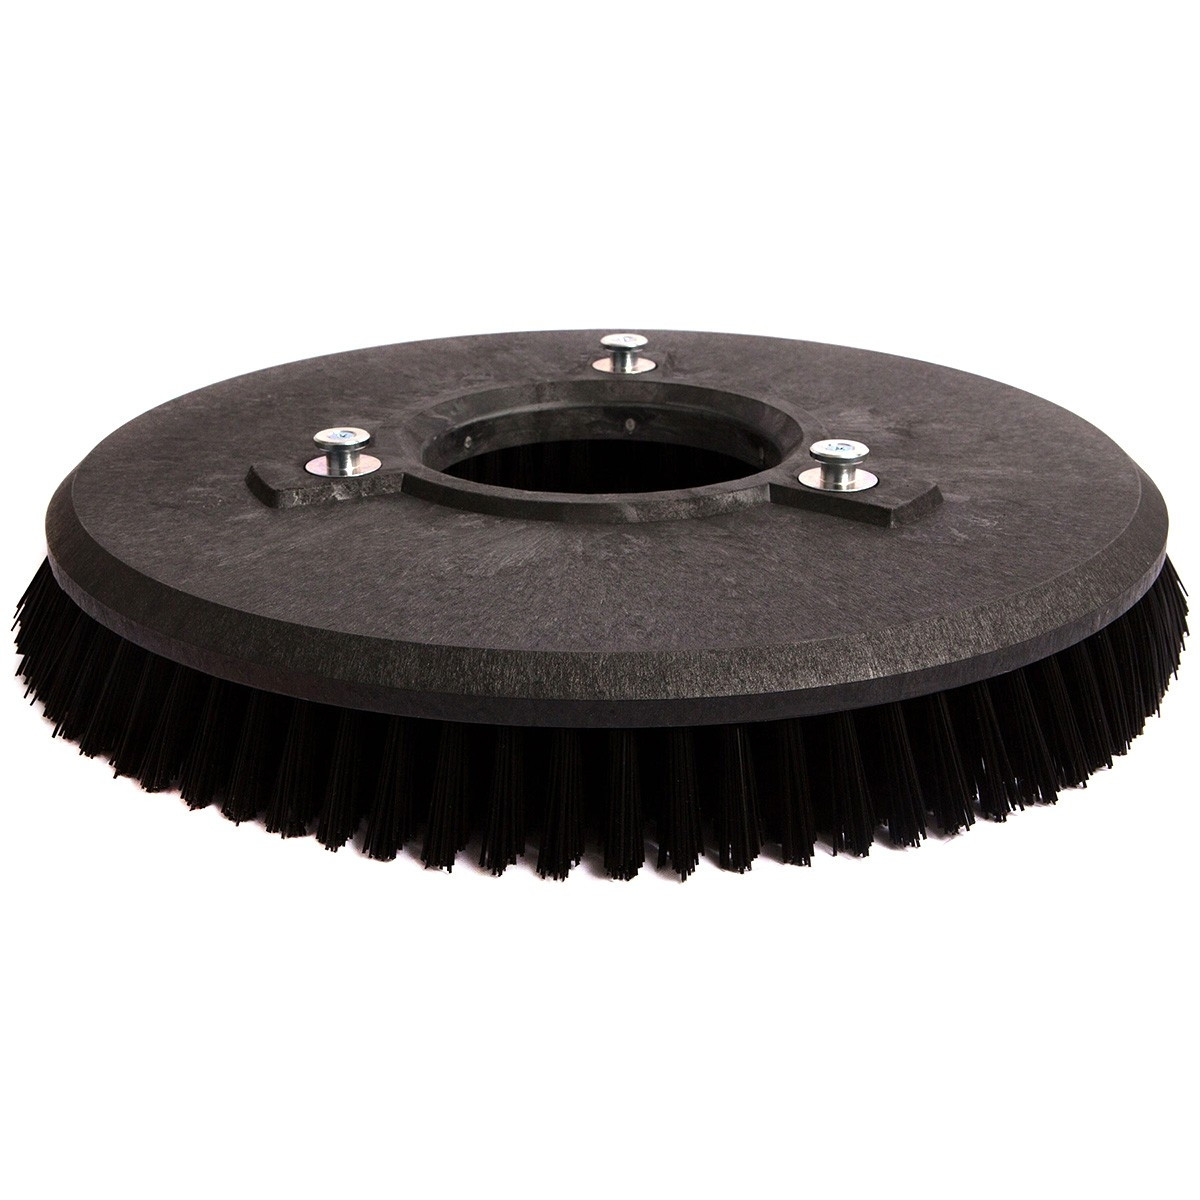 Tornado 174 16 5 Quot Heavy Duty Grit Floor Brush 48903140 2